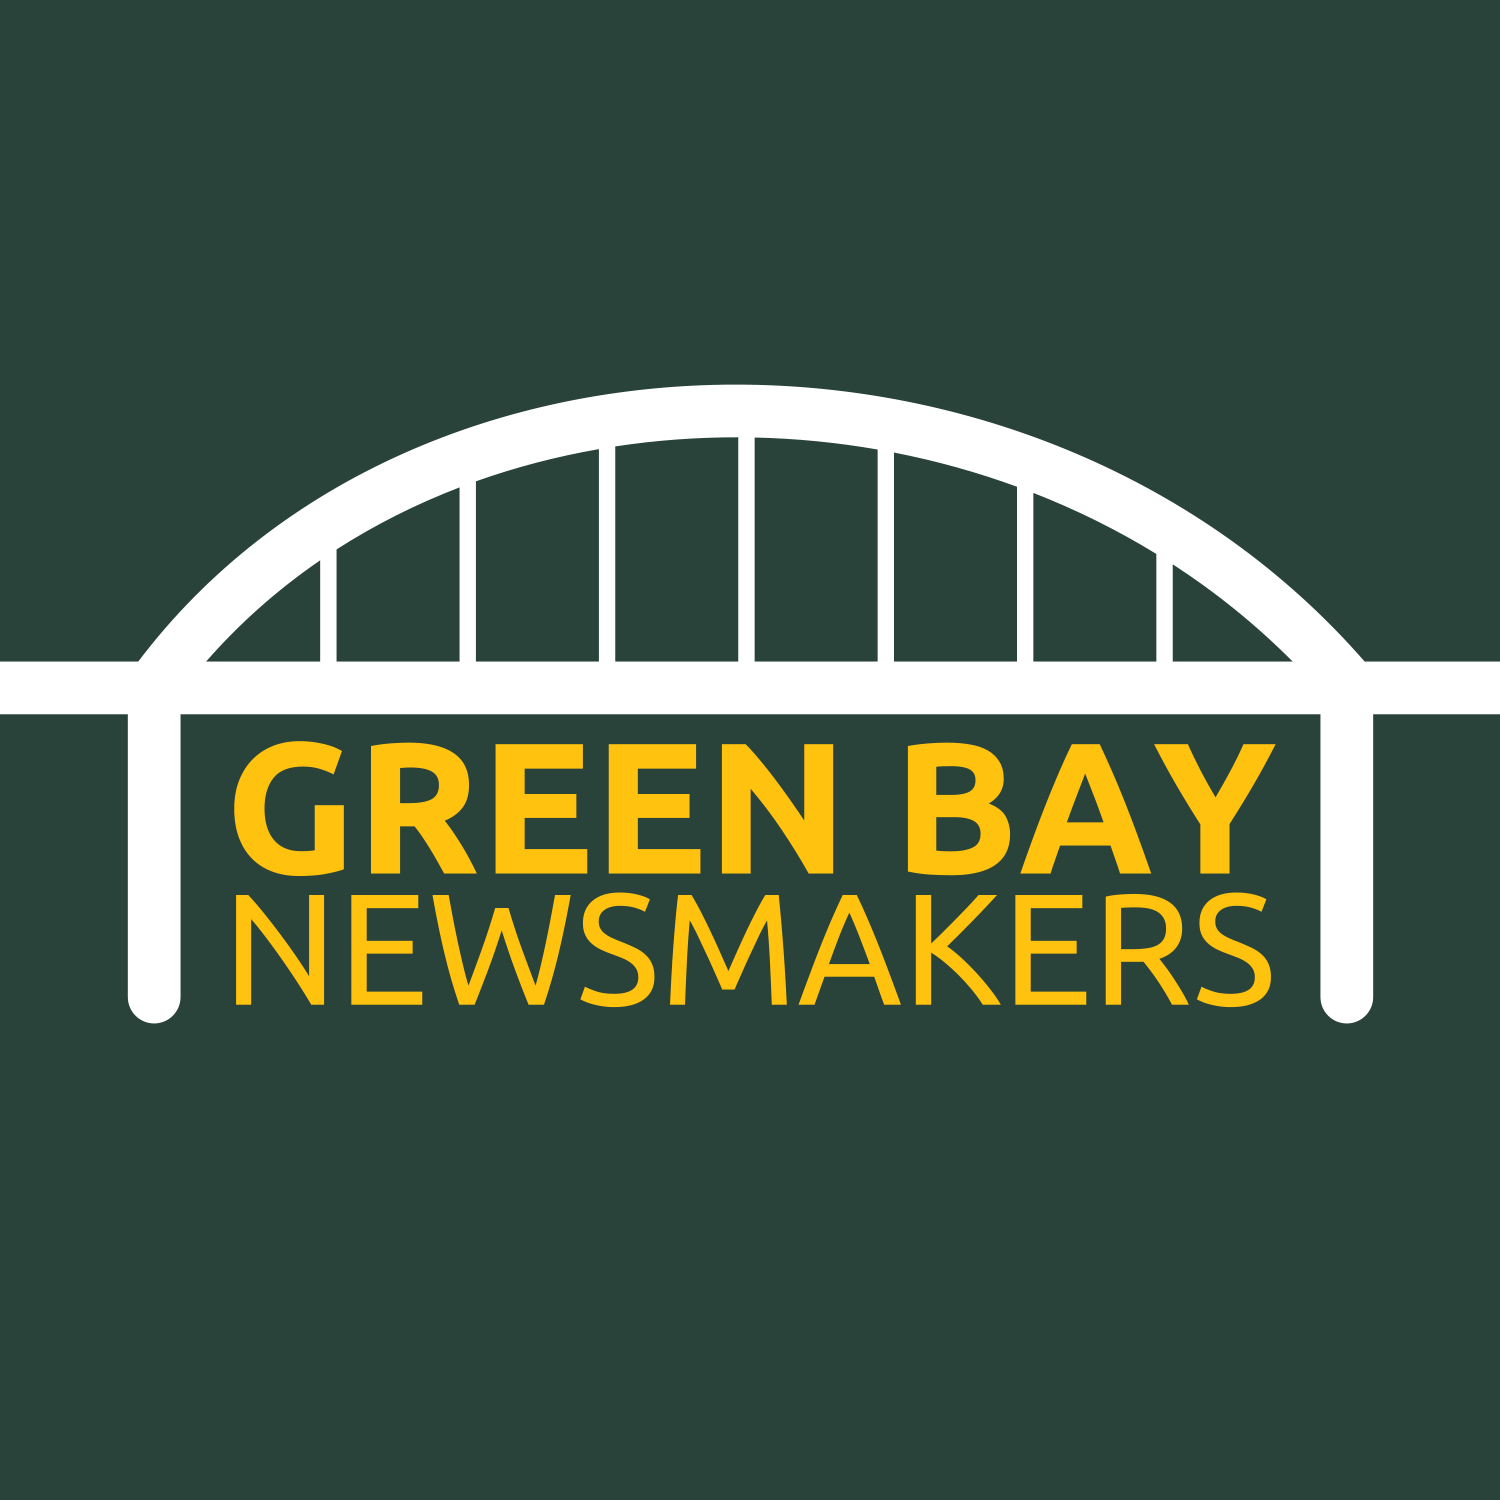 Green Bay Newsmakers